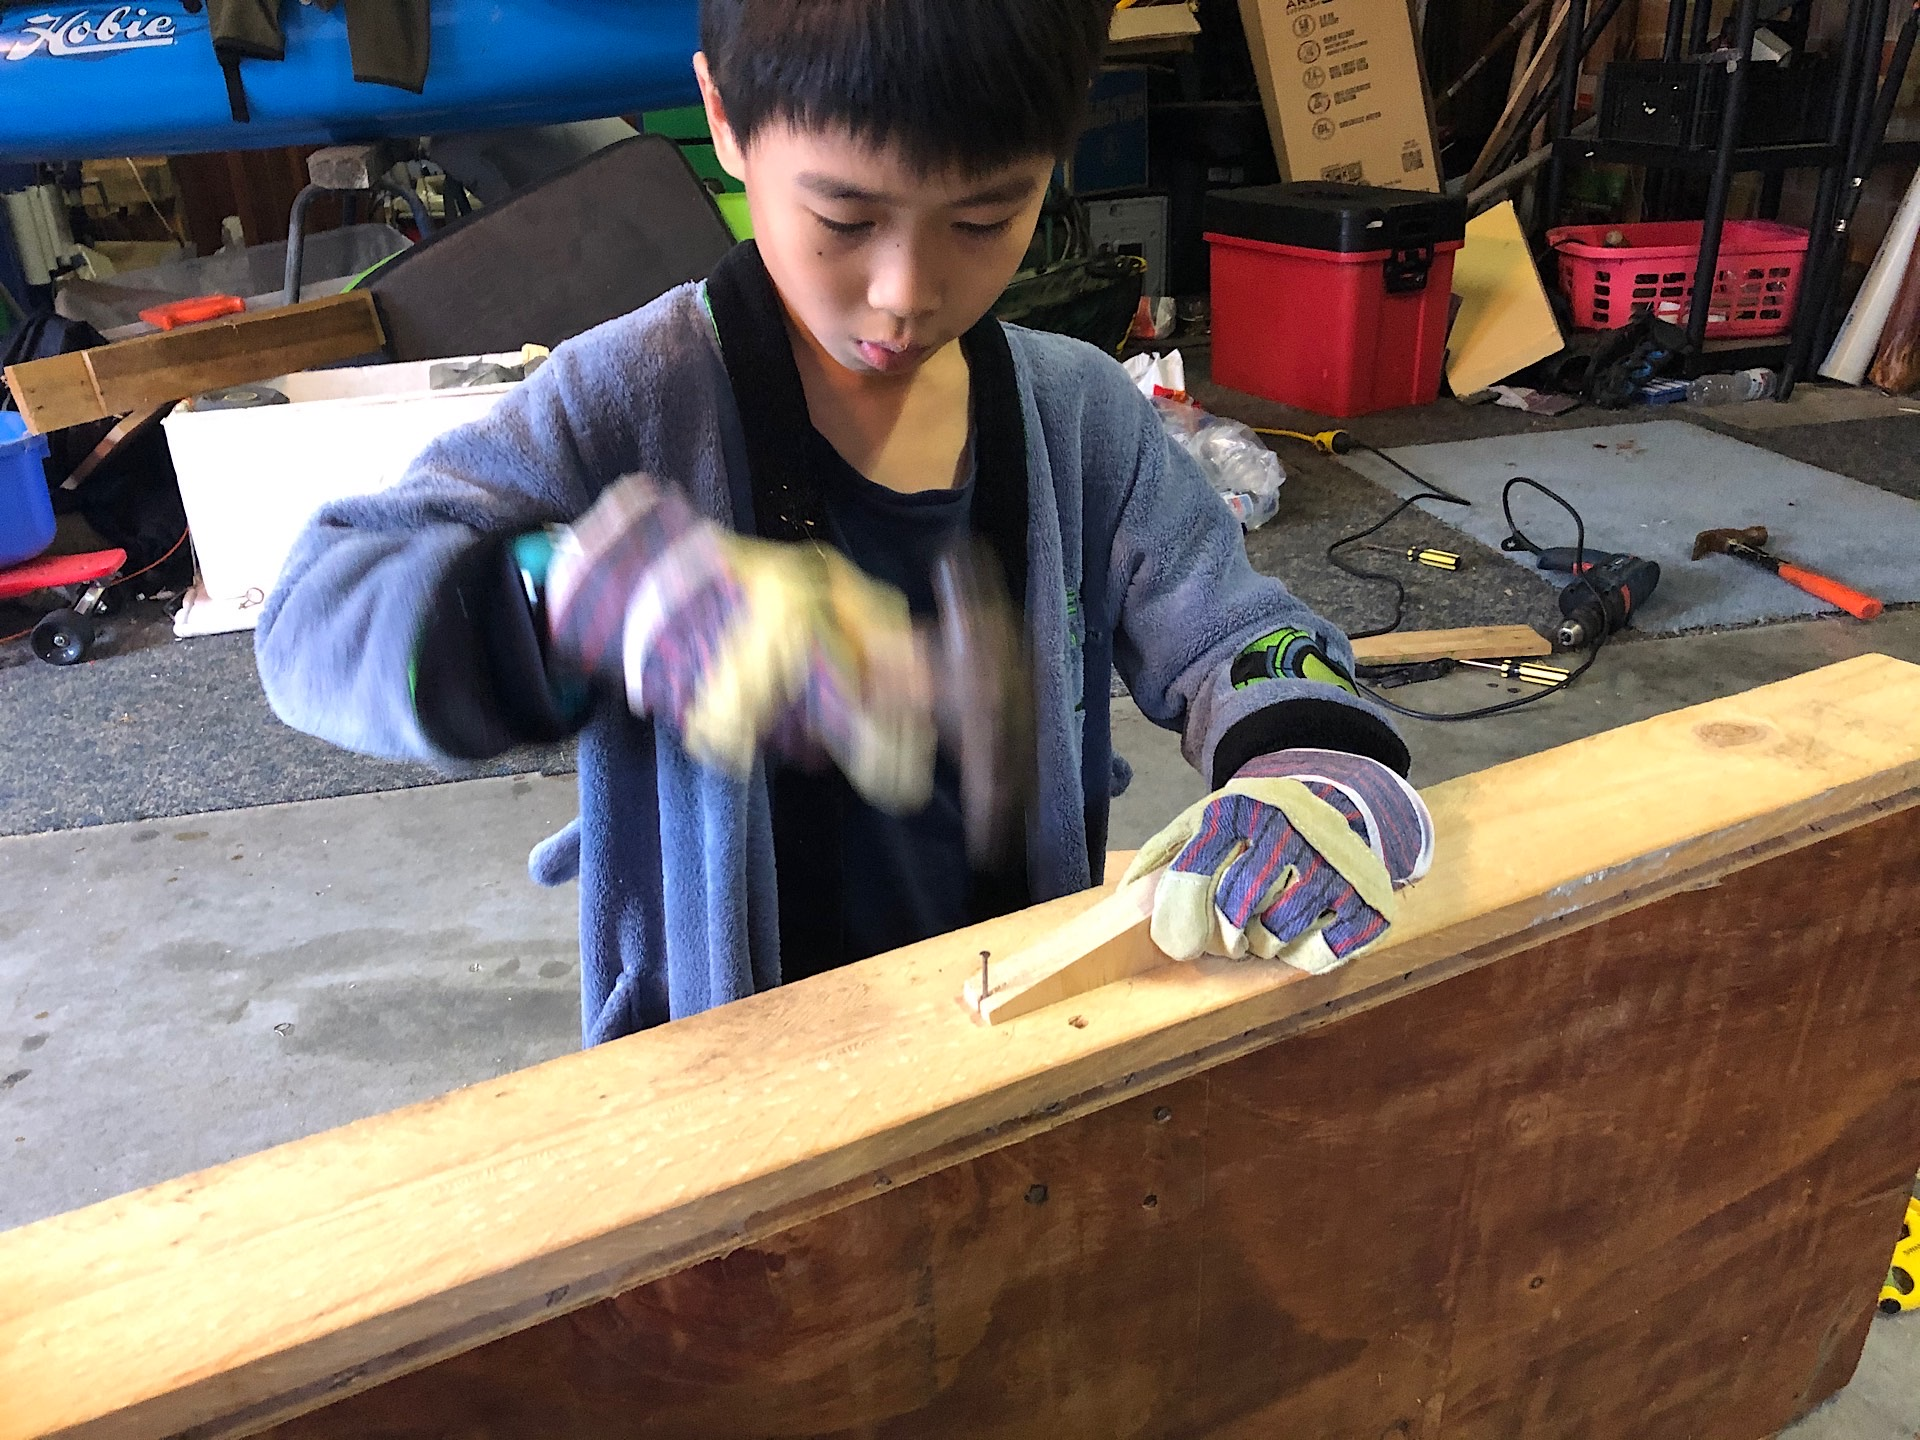 Thien-San is hammering a board to build his workbench